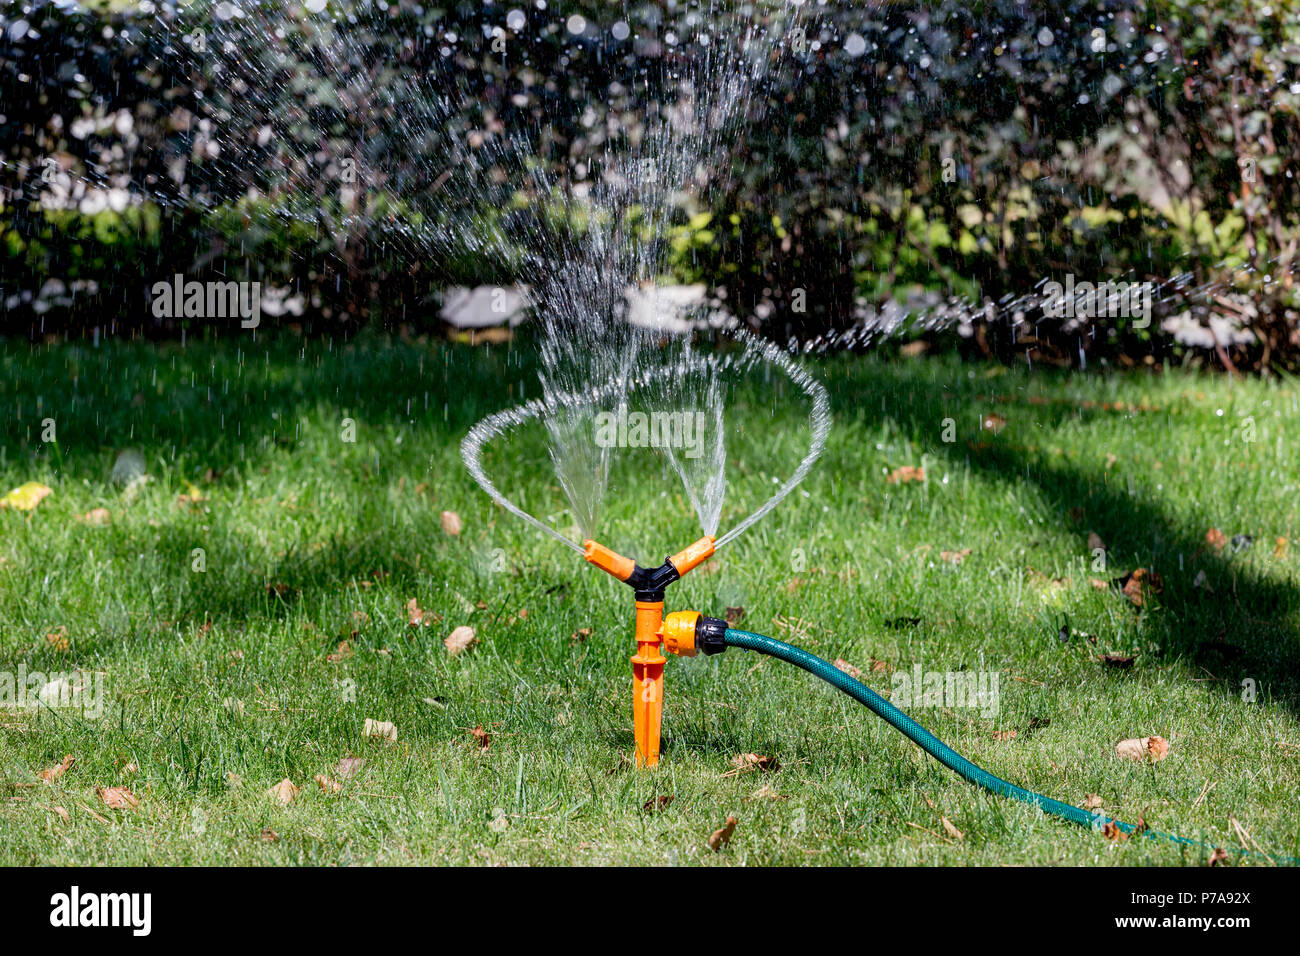 Watering the lawn with automatic sprinkler system Stock